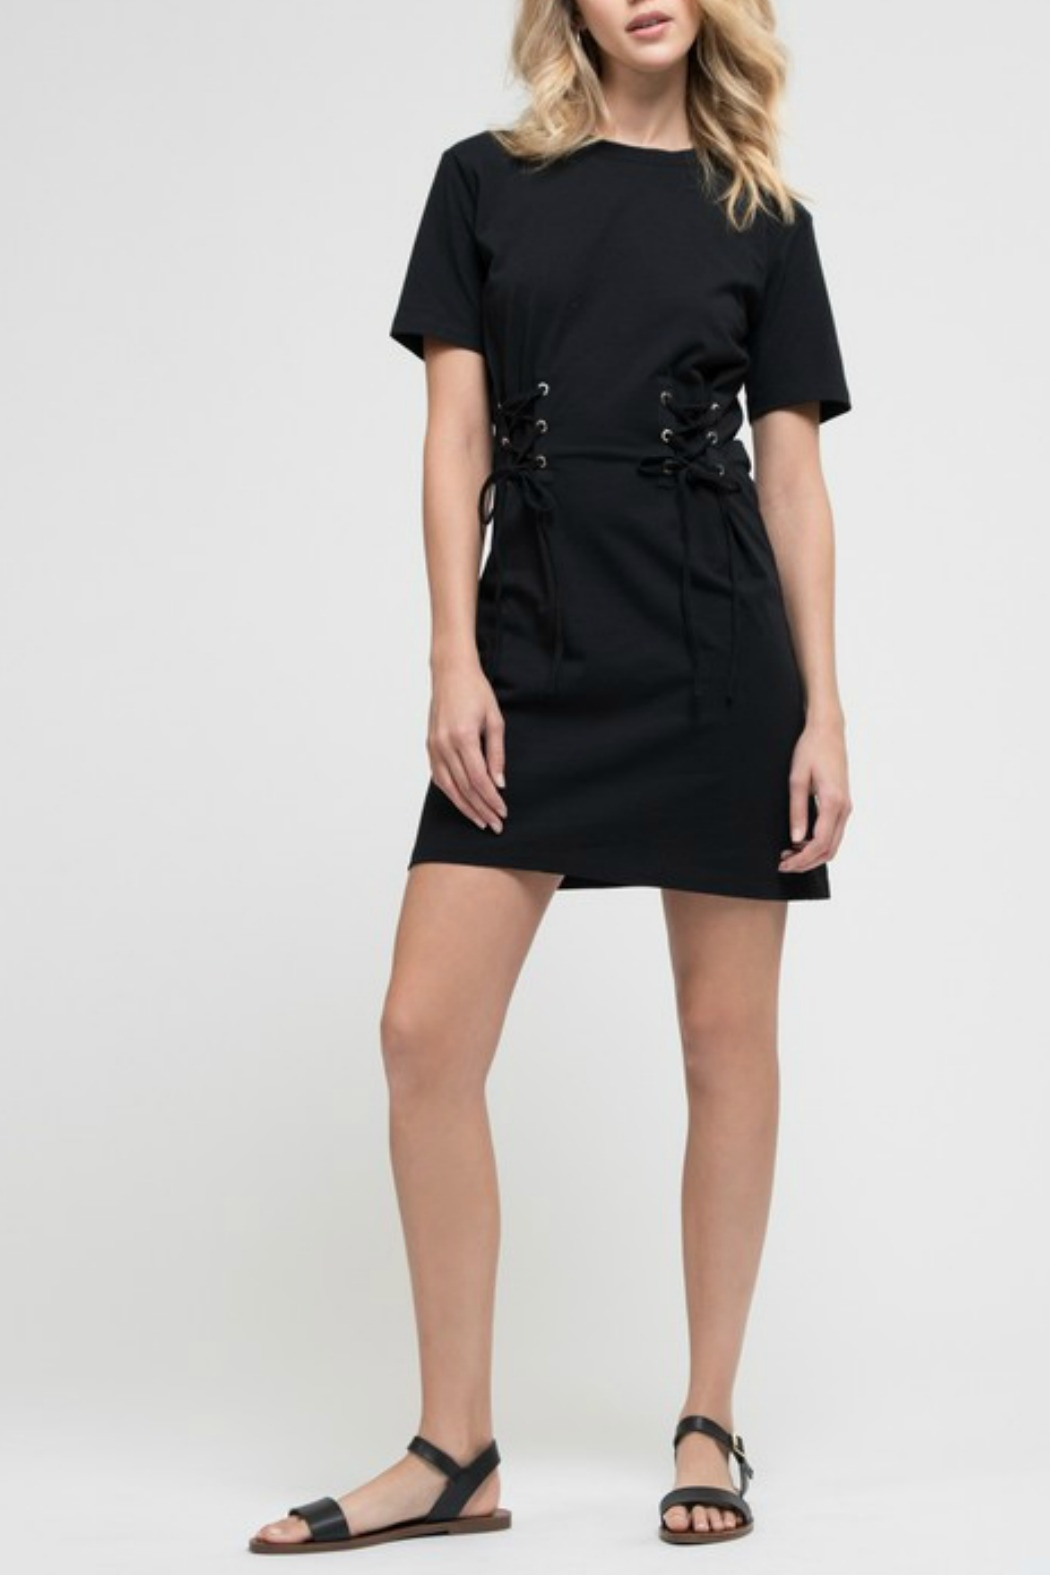 Blu Pepper Lace Up Knit Dress - Front Full Image